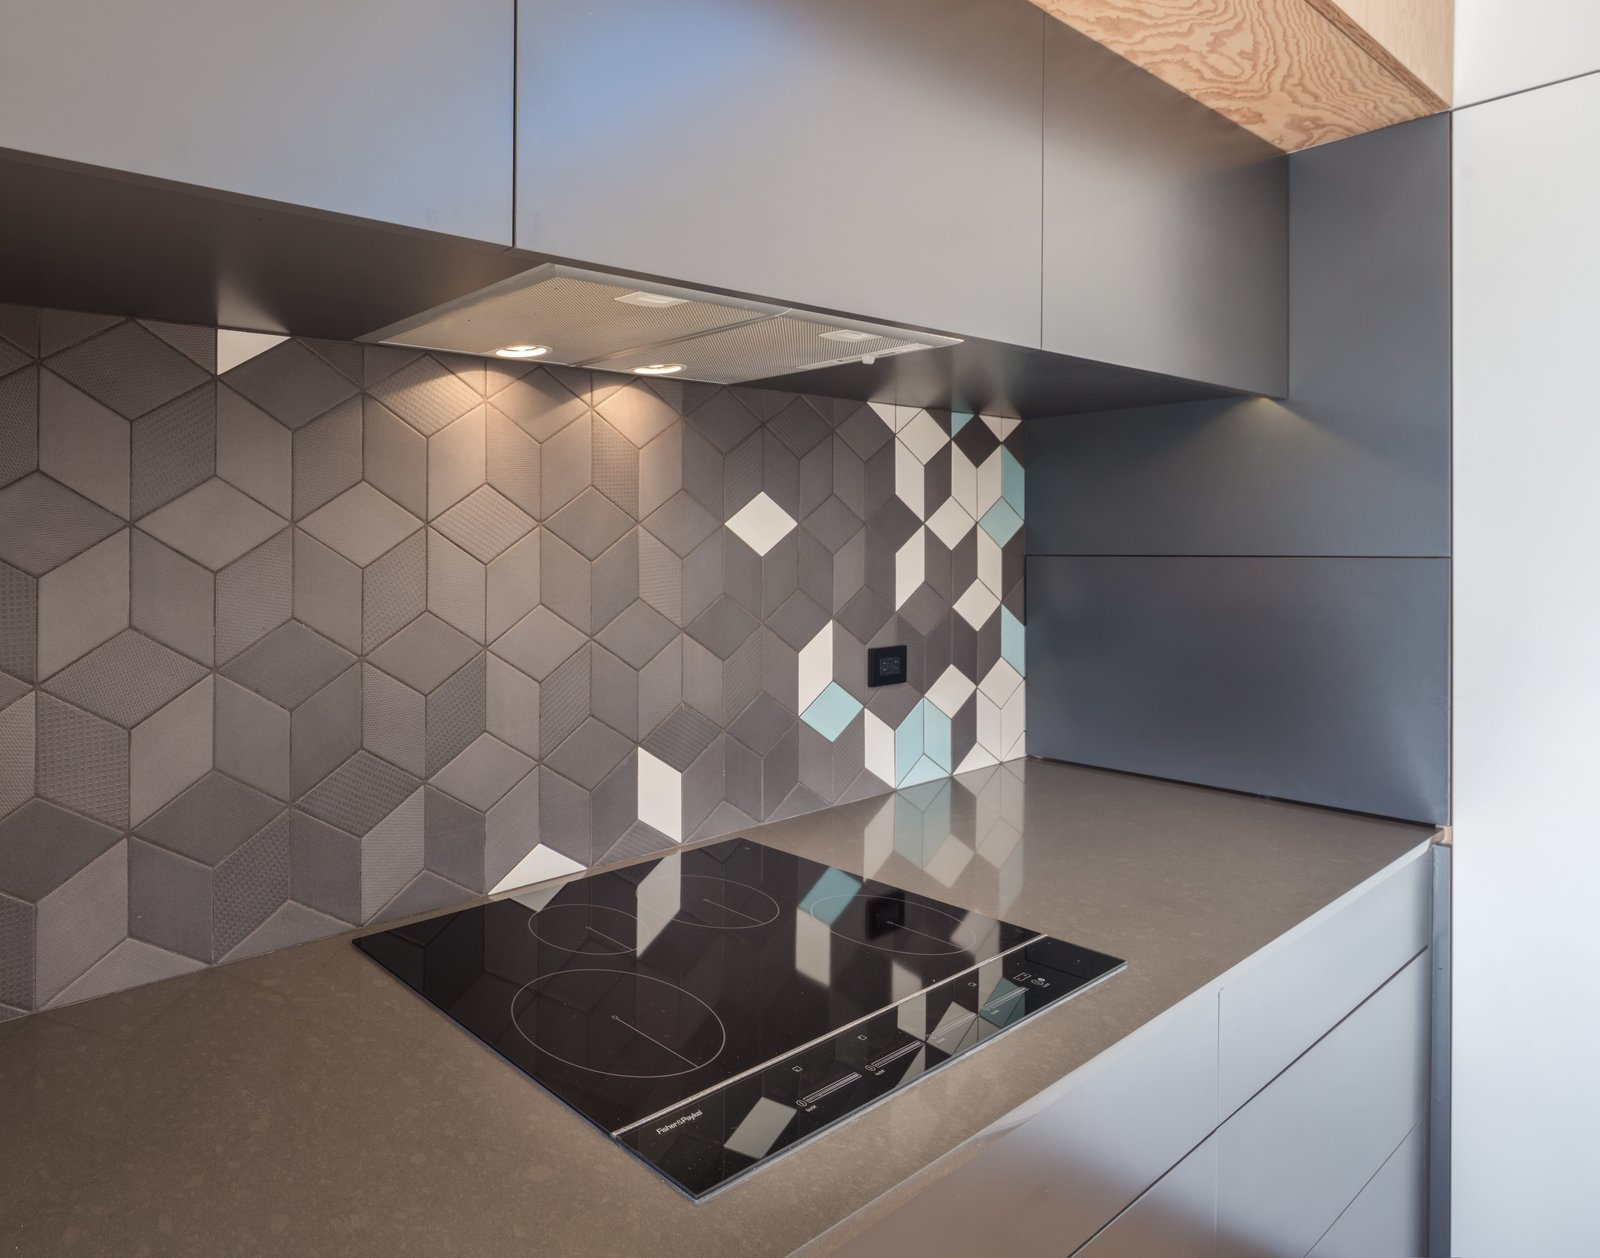 Induction cook top by FisherPaykel + Mutina Tiles  The Beach Lab by Surfside Projects